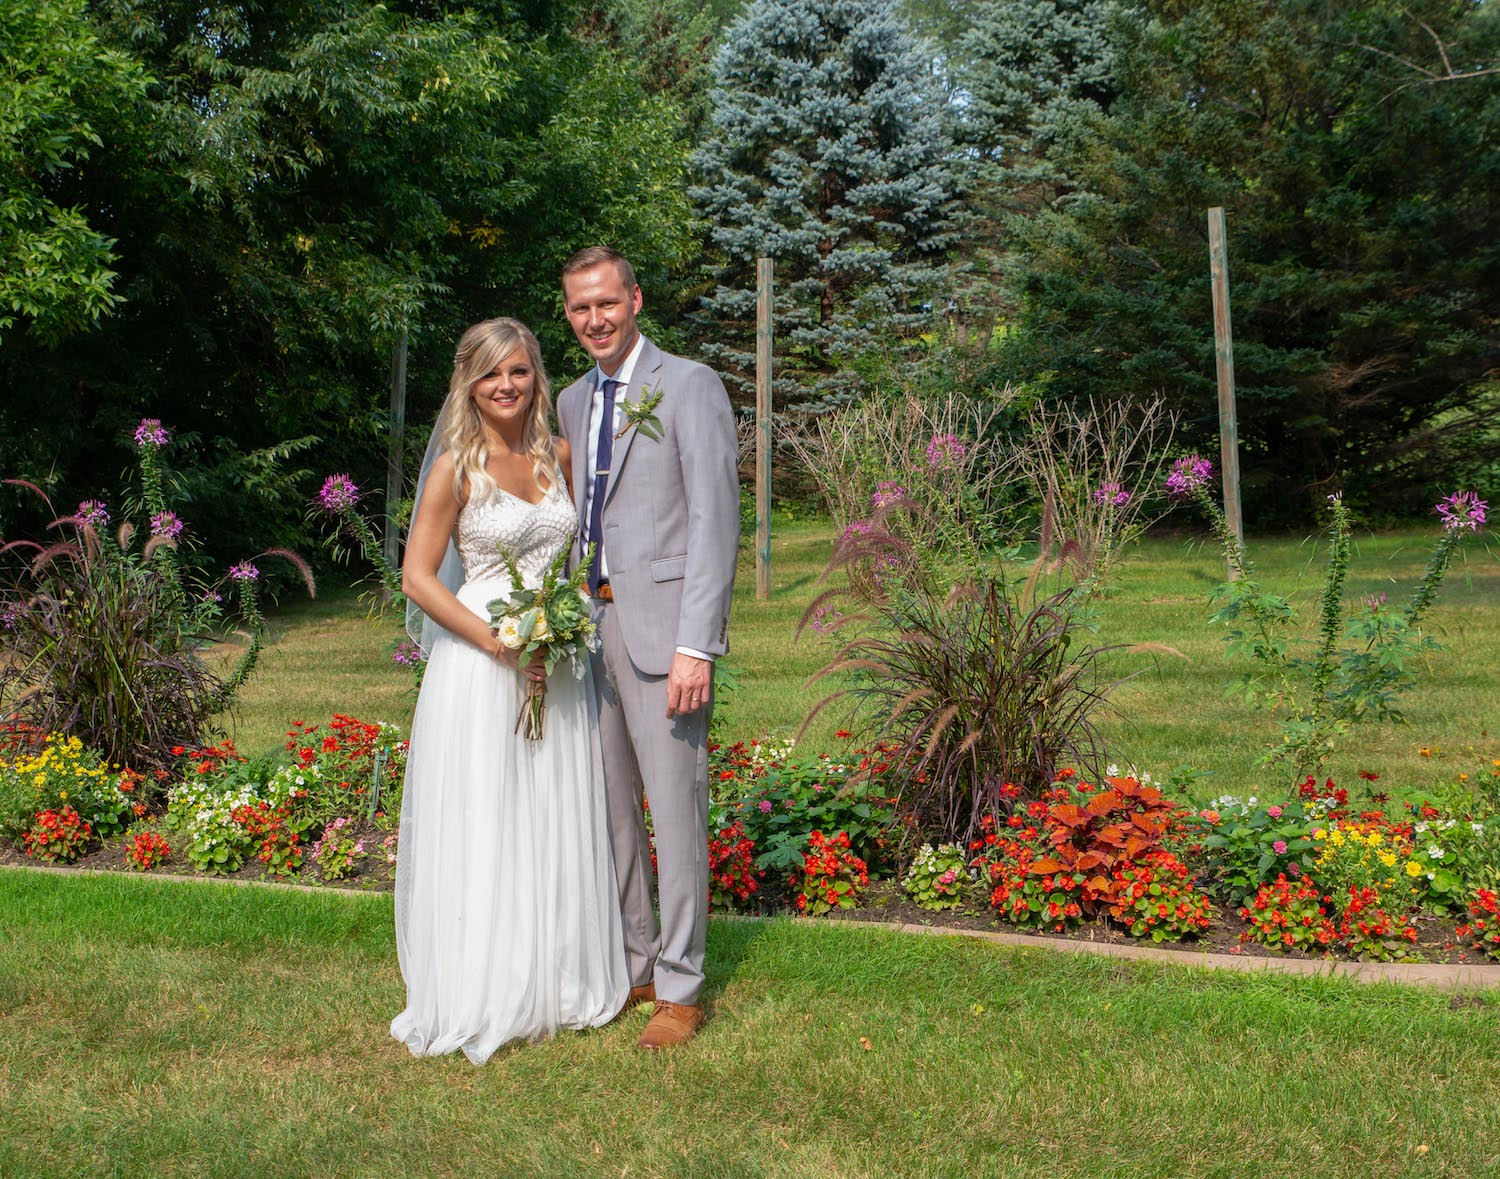 Cindyrellas Garden outdoor wedding ceremony by a private lake with wooded backdrops,